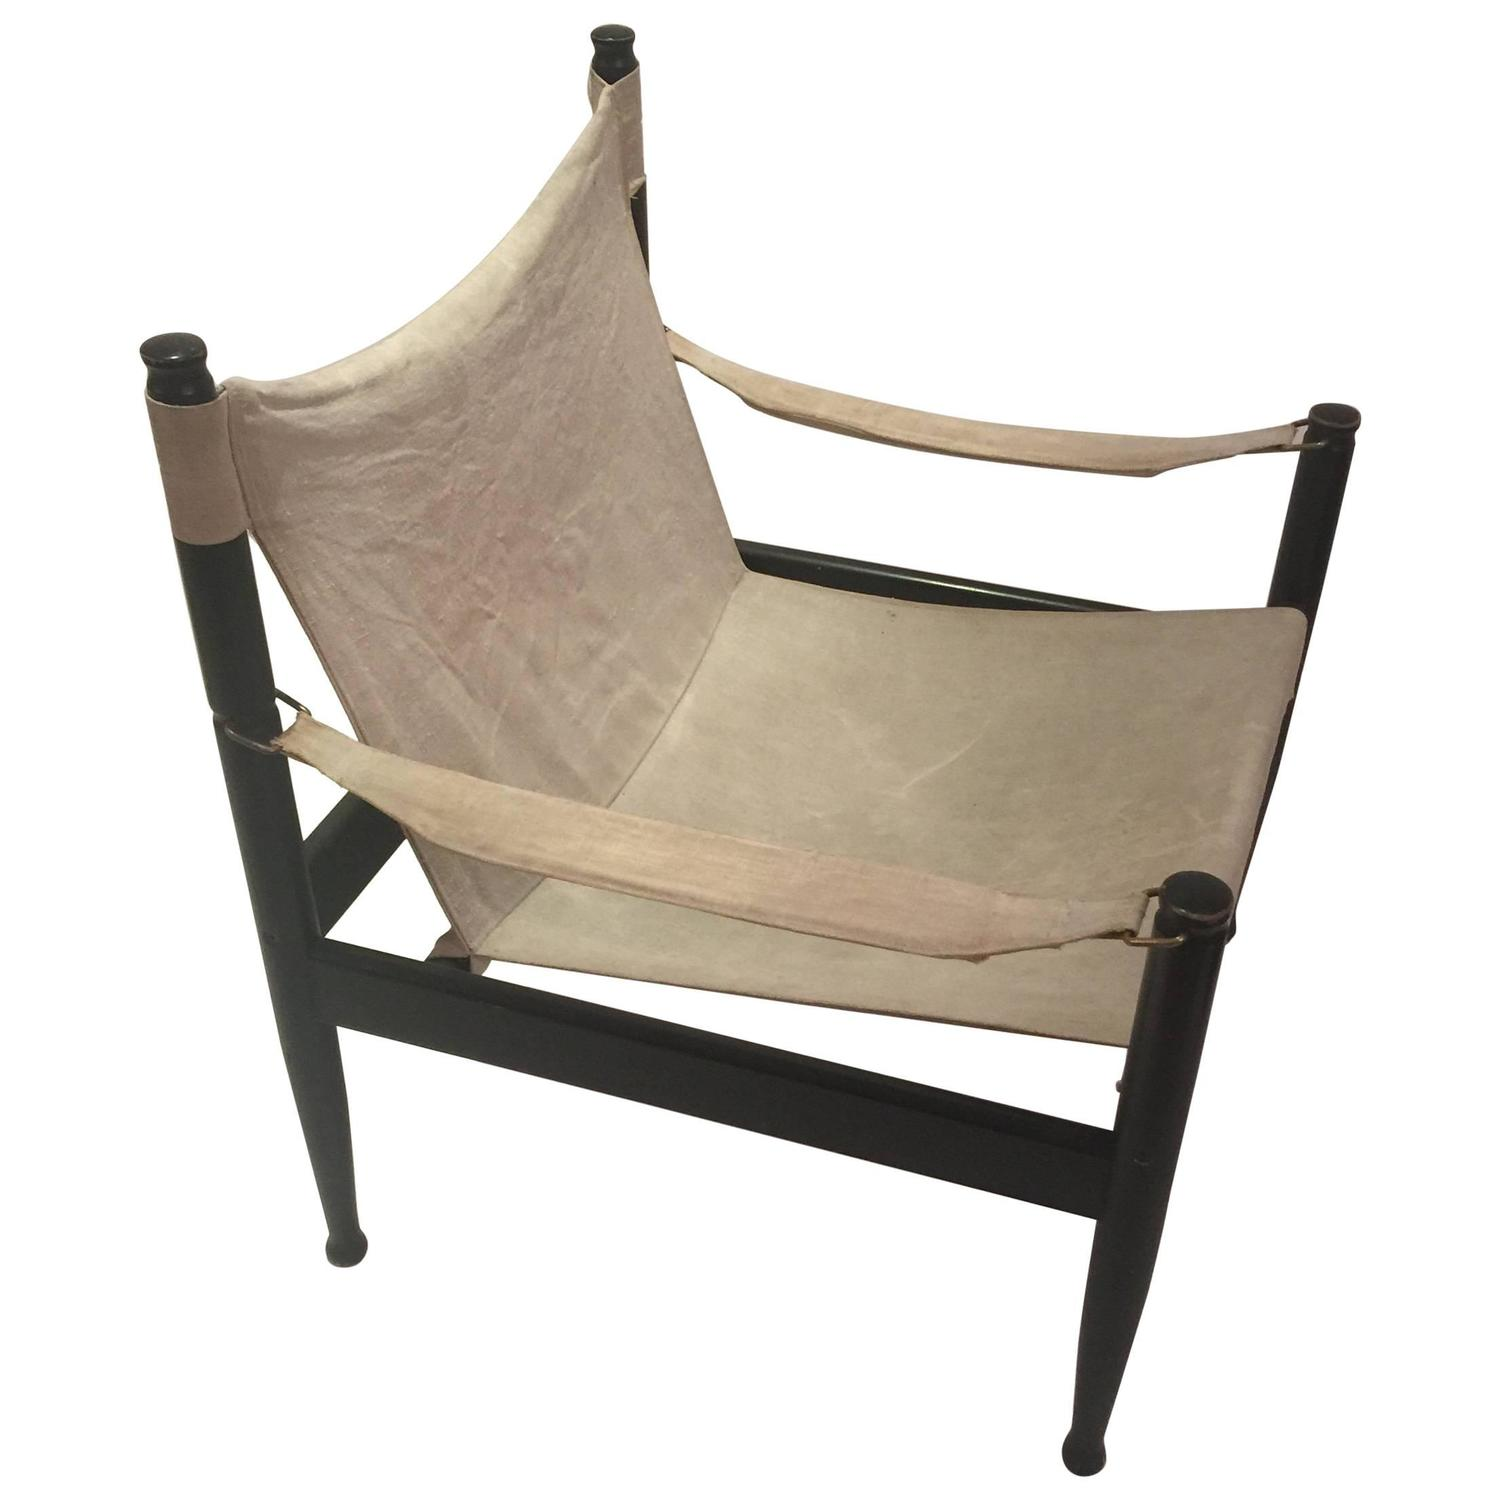 Erik Worts for Niels Eilersen Safari Chair For Sale at 1stdibs